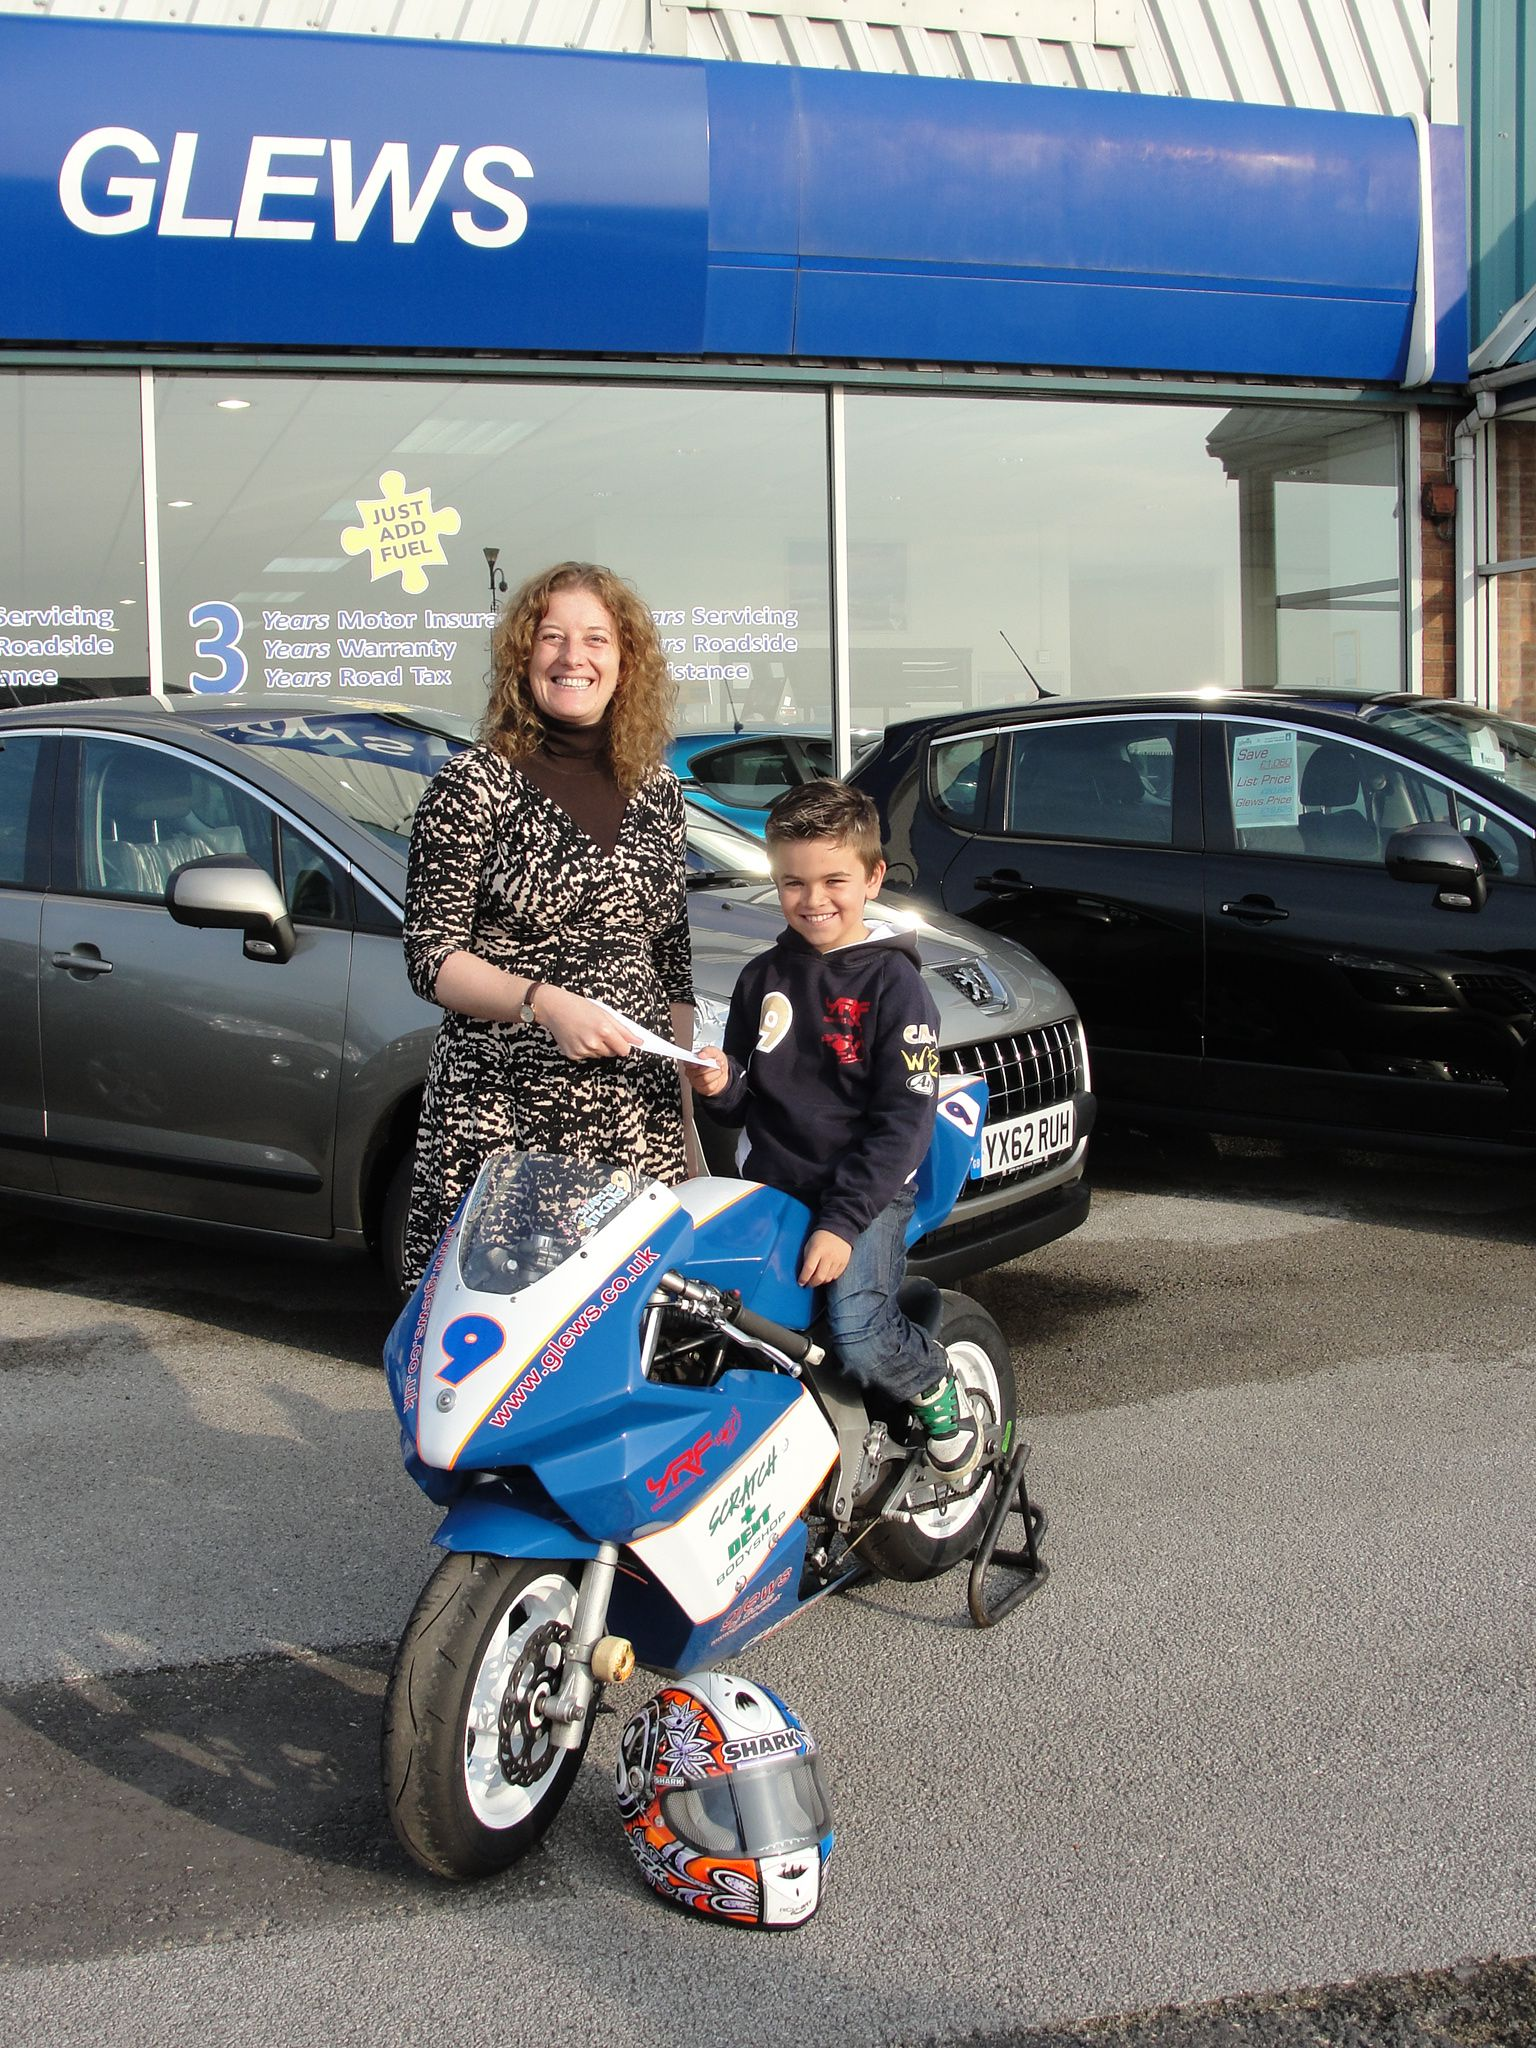 Glews puts fuel into young racer's Championship hopes